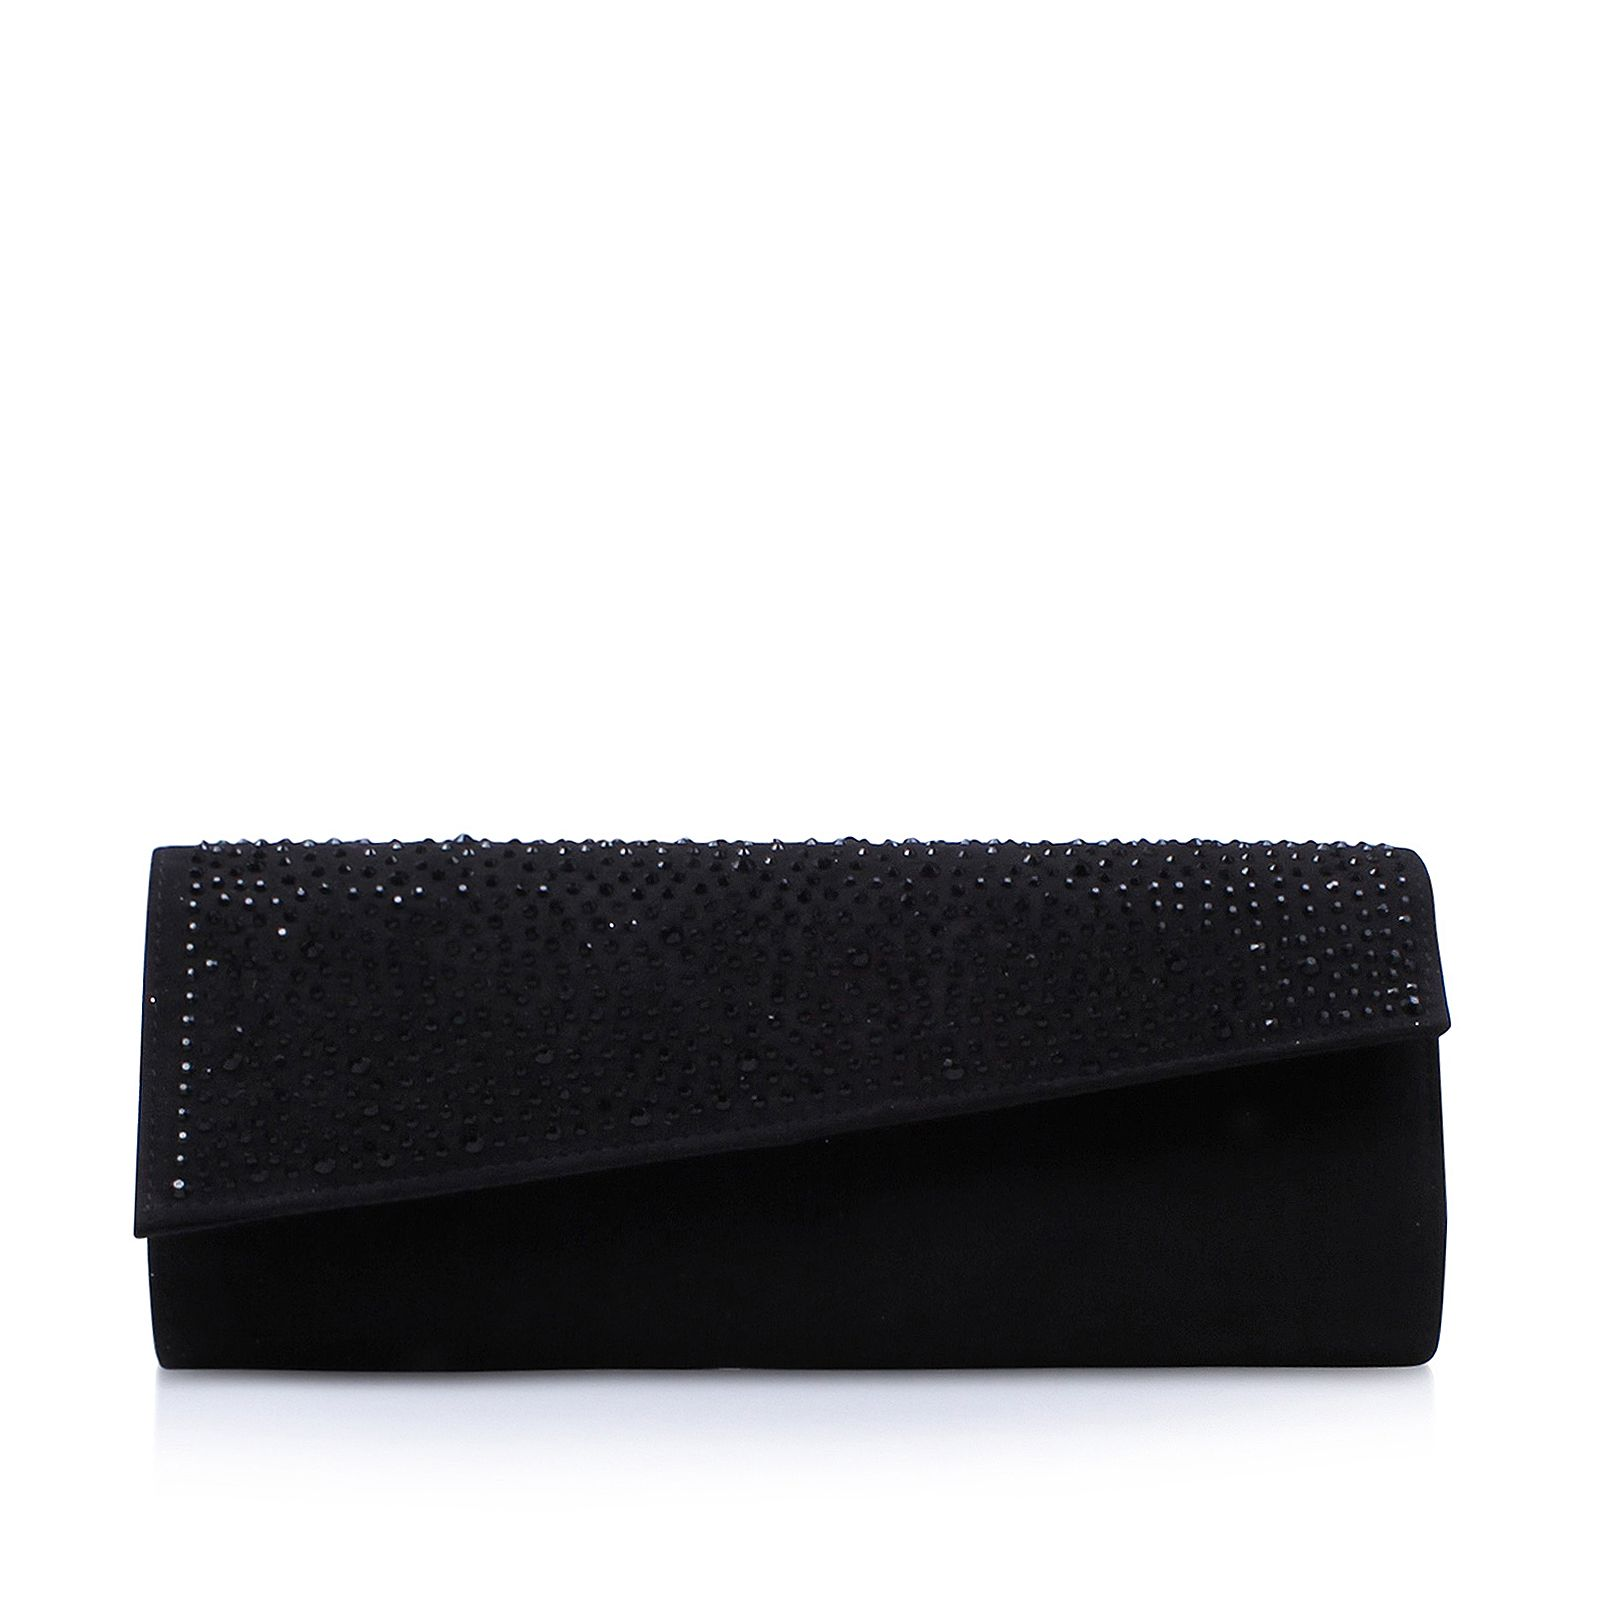 Carvela Dazzle 2 clutch bags, Black